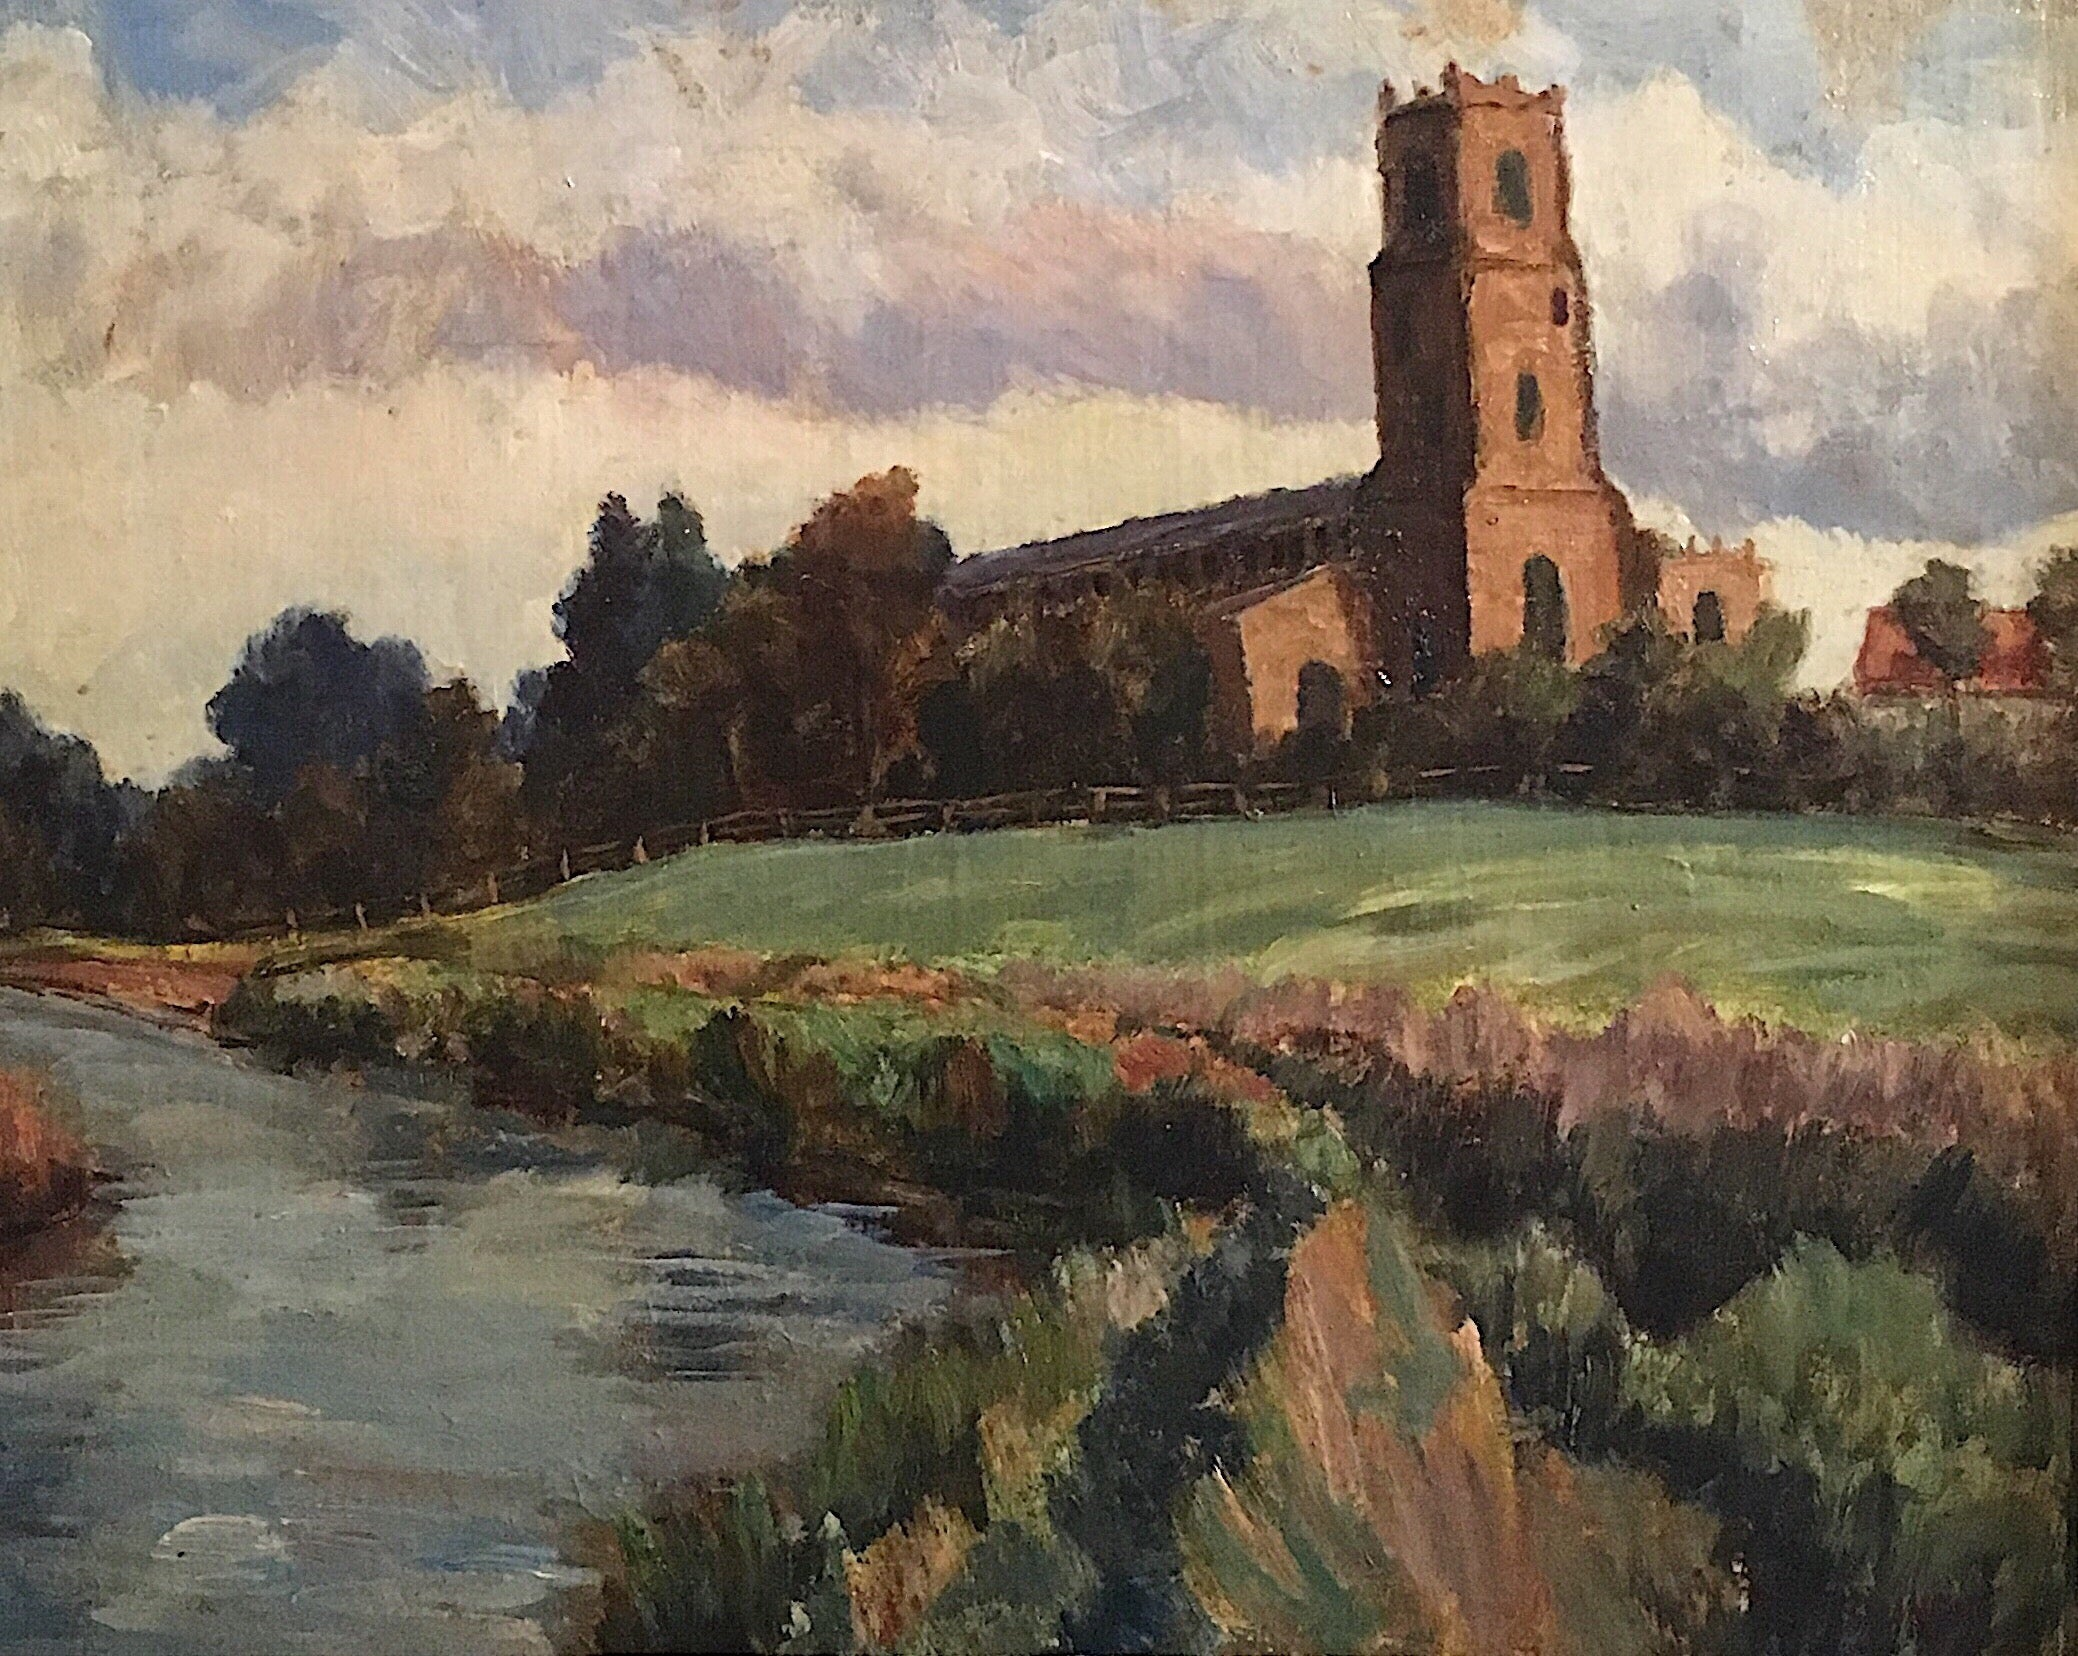 Mid 20th Century British Impressionist View of a Church - Oil Painting